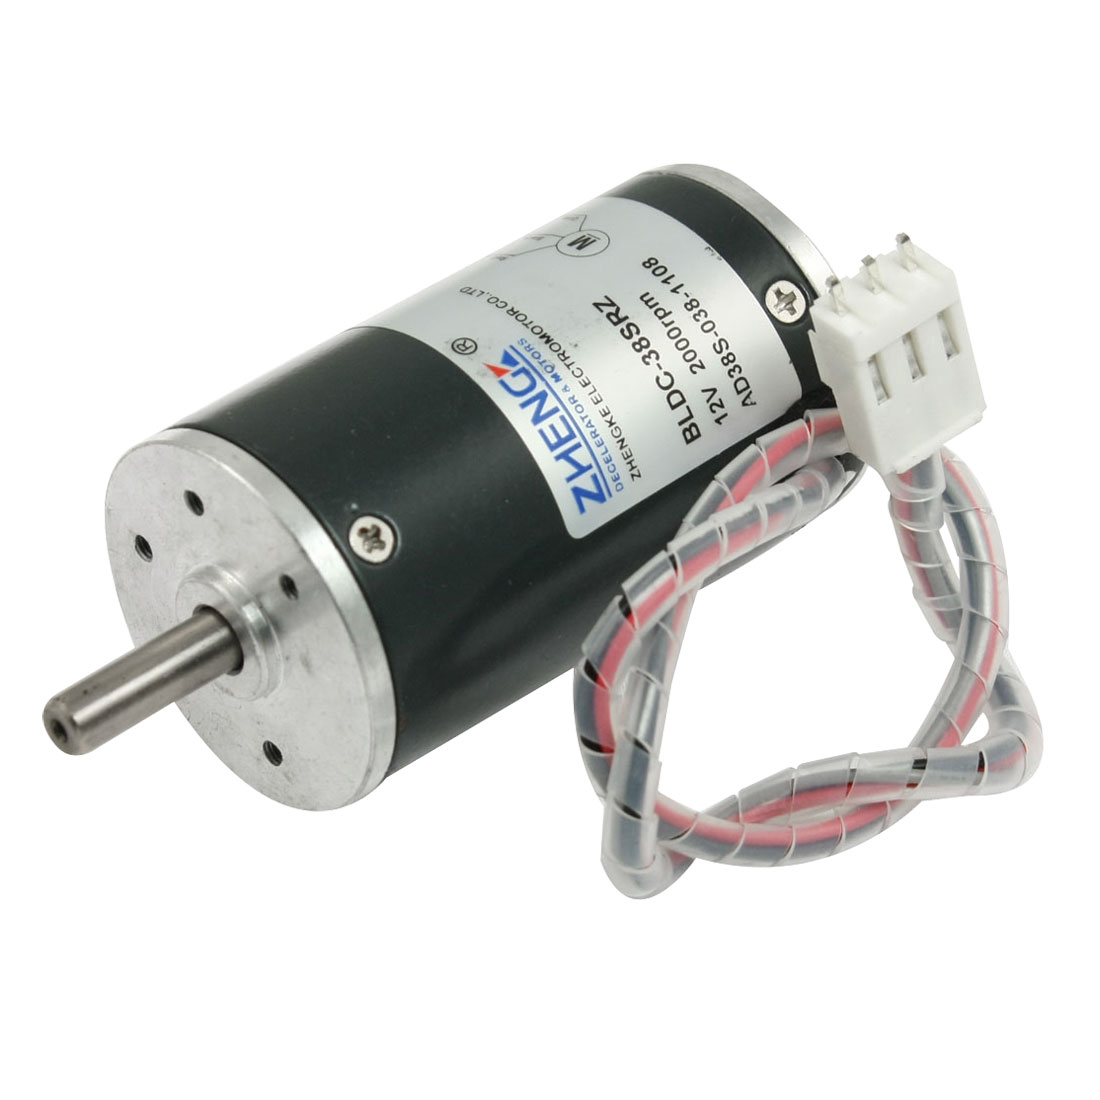 6mm-Dia-High-Speed-100G-cm-0-3A-Brushless-Motor-DC-12V